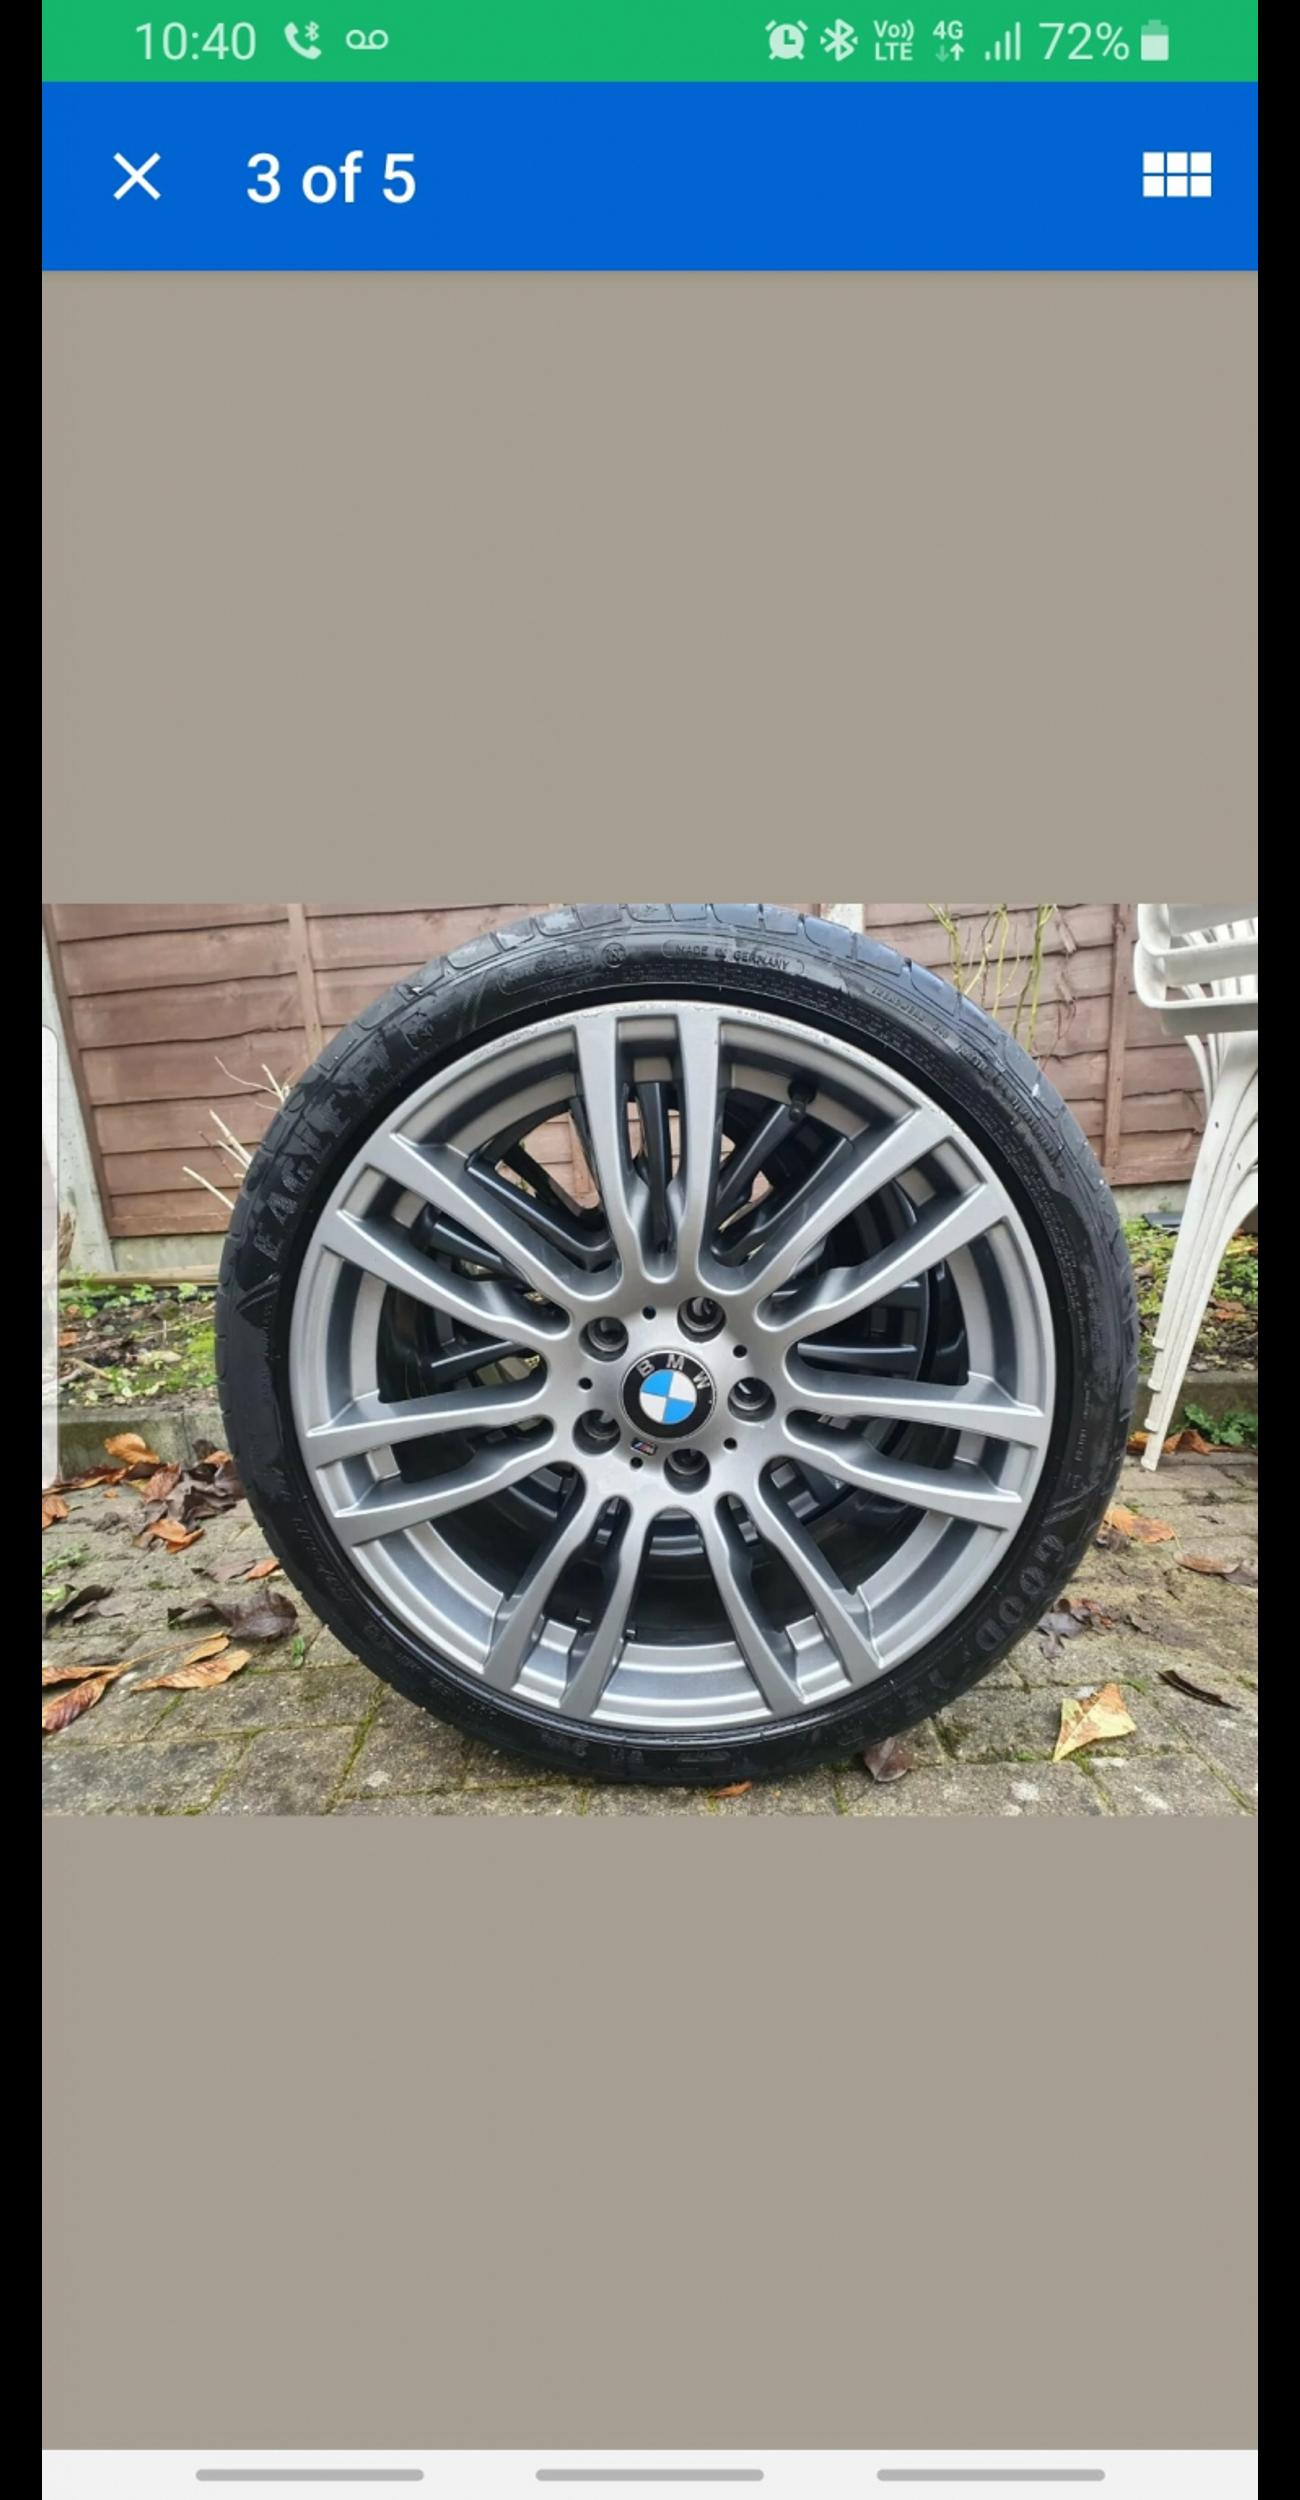 Bmw F30 M Sport Wheels 19inch In Aylesbury For 370 00 For Sale Shpock